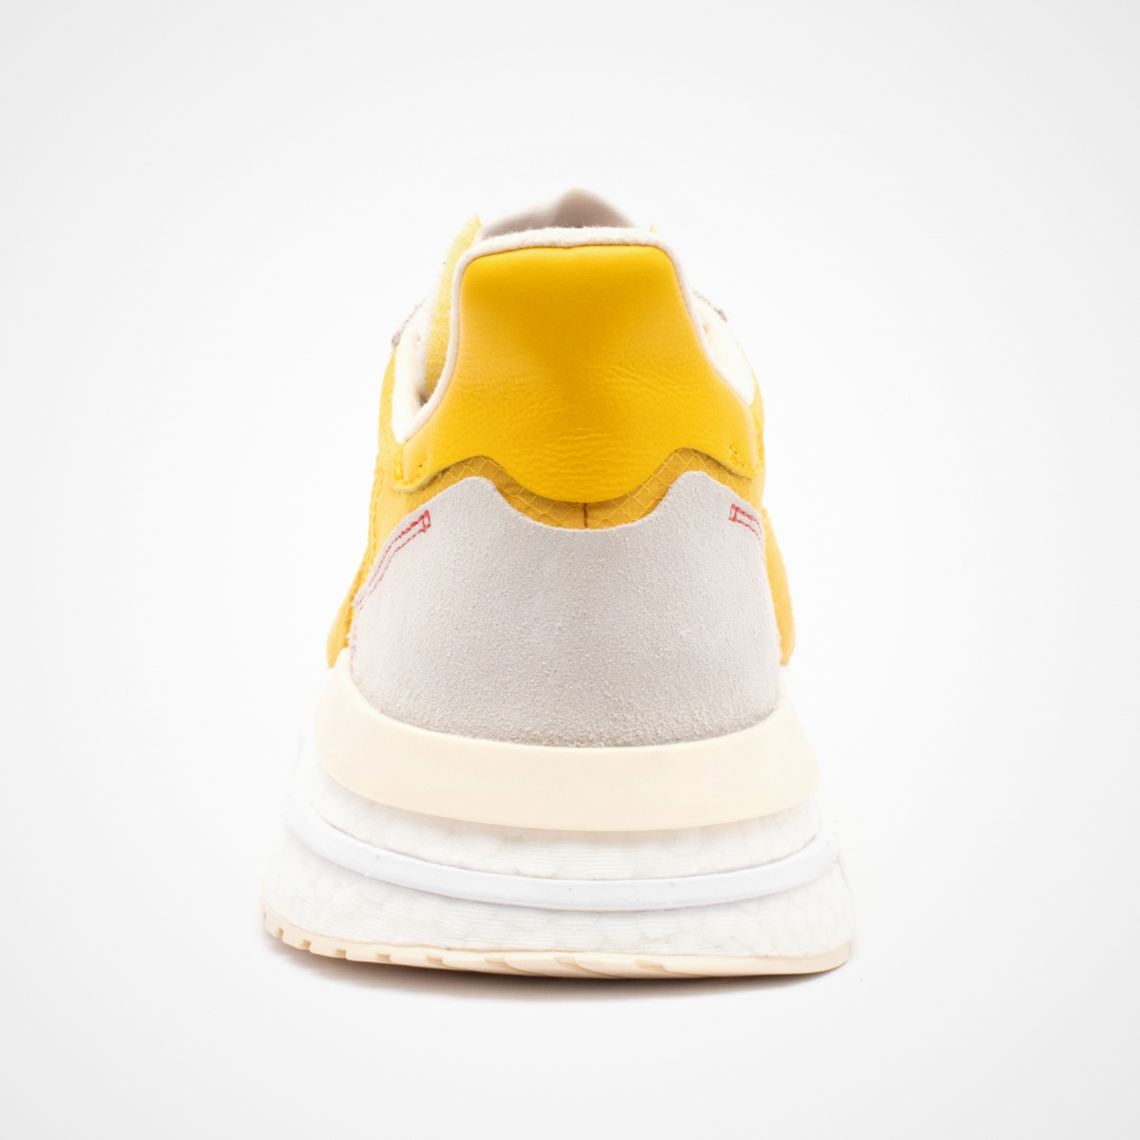 adidas ZX 500 RM Yellow White CG6860 Release Info  spare mehr